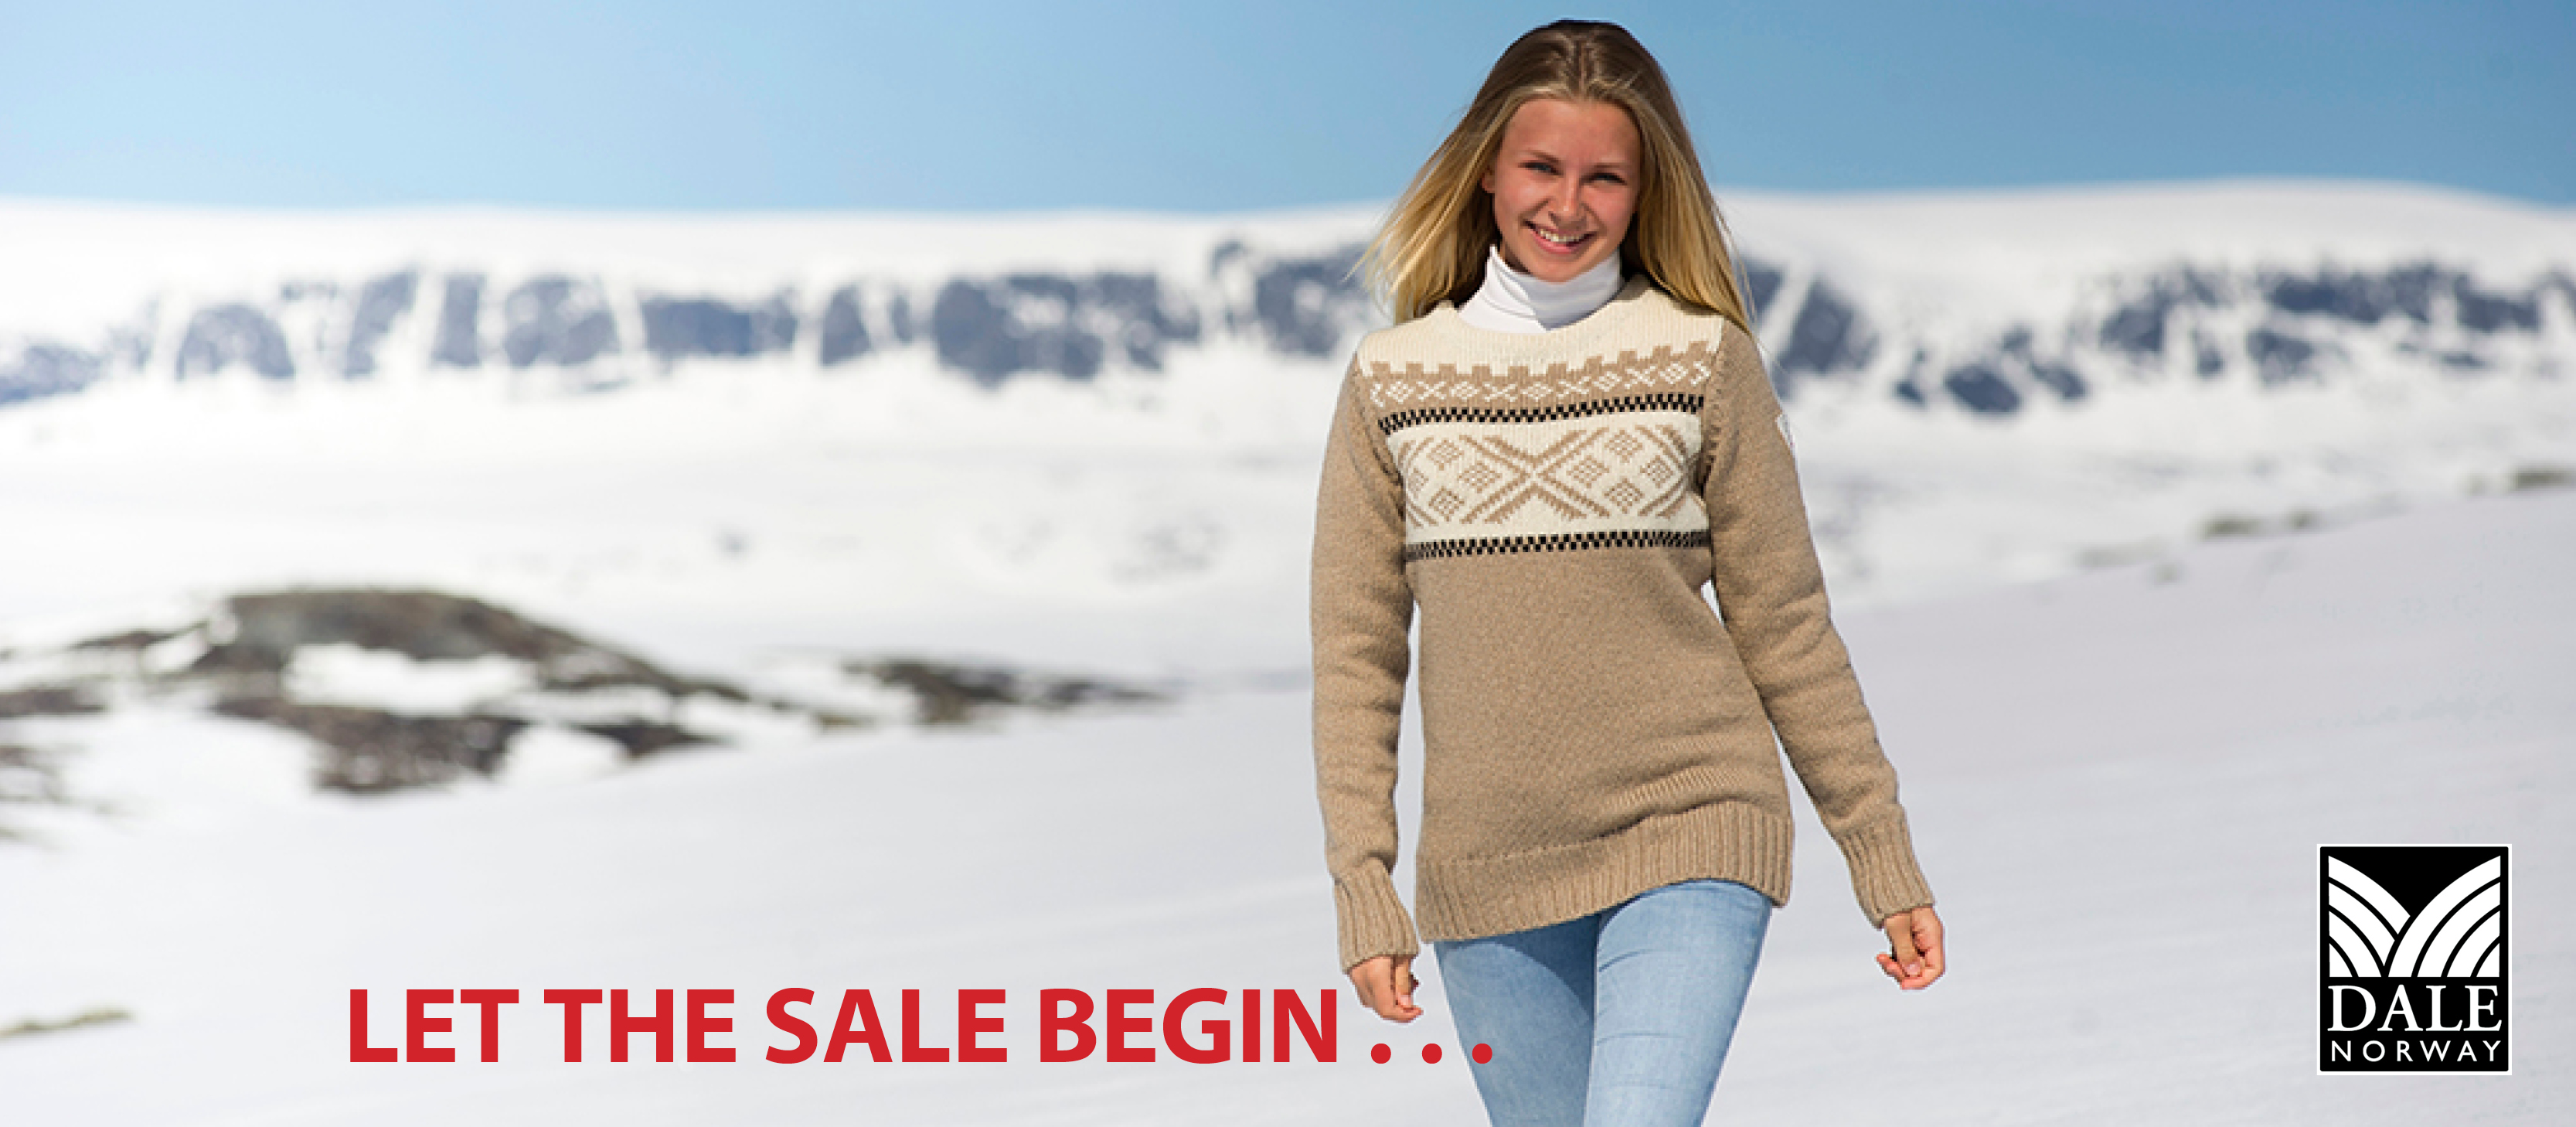 Semi Annual Dale of Norway Sale at The Nordic Shop